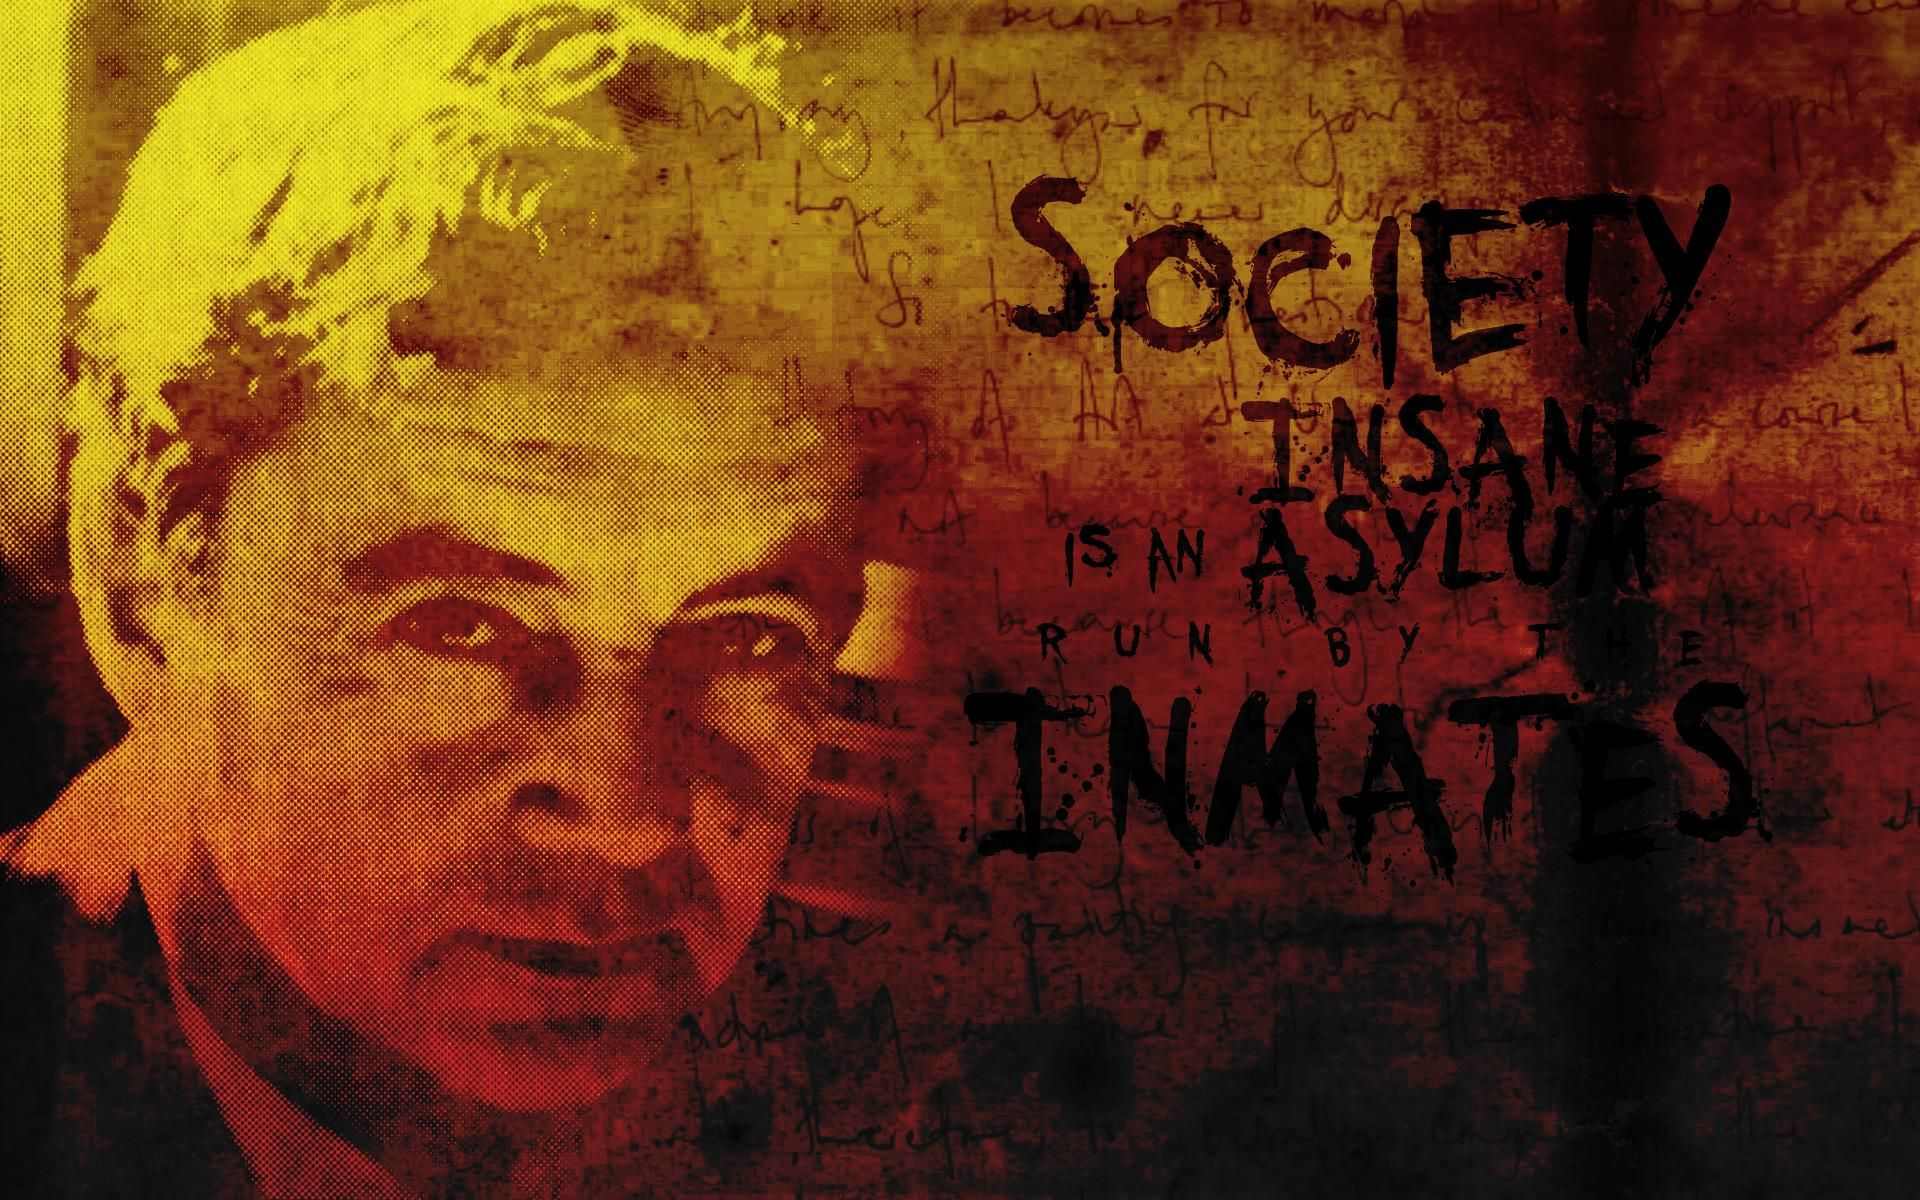 erving goffman asylums essays on the social situation Erving goffman's asylums: essays on the social situation of mental patients and other inmates is a key text in the sociology of mental illness it is sometimes seen.